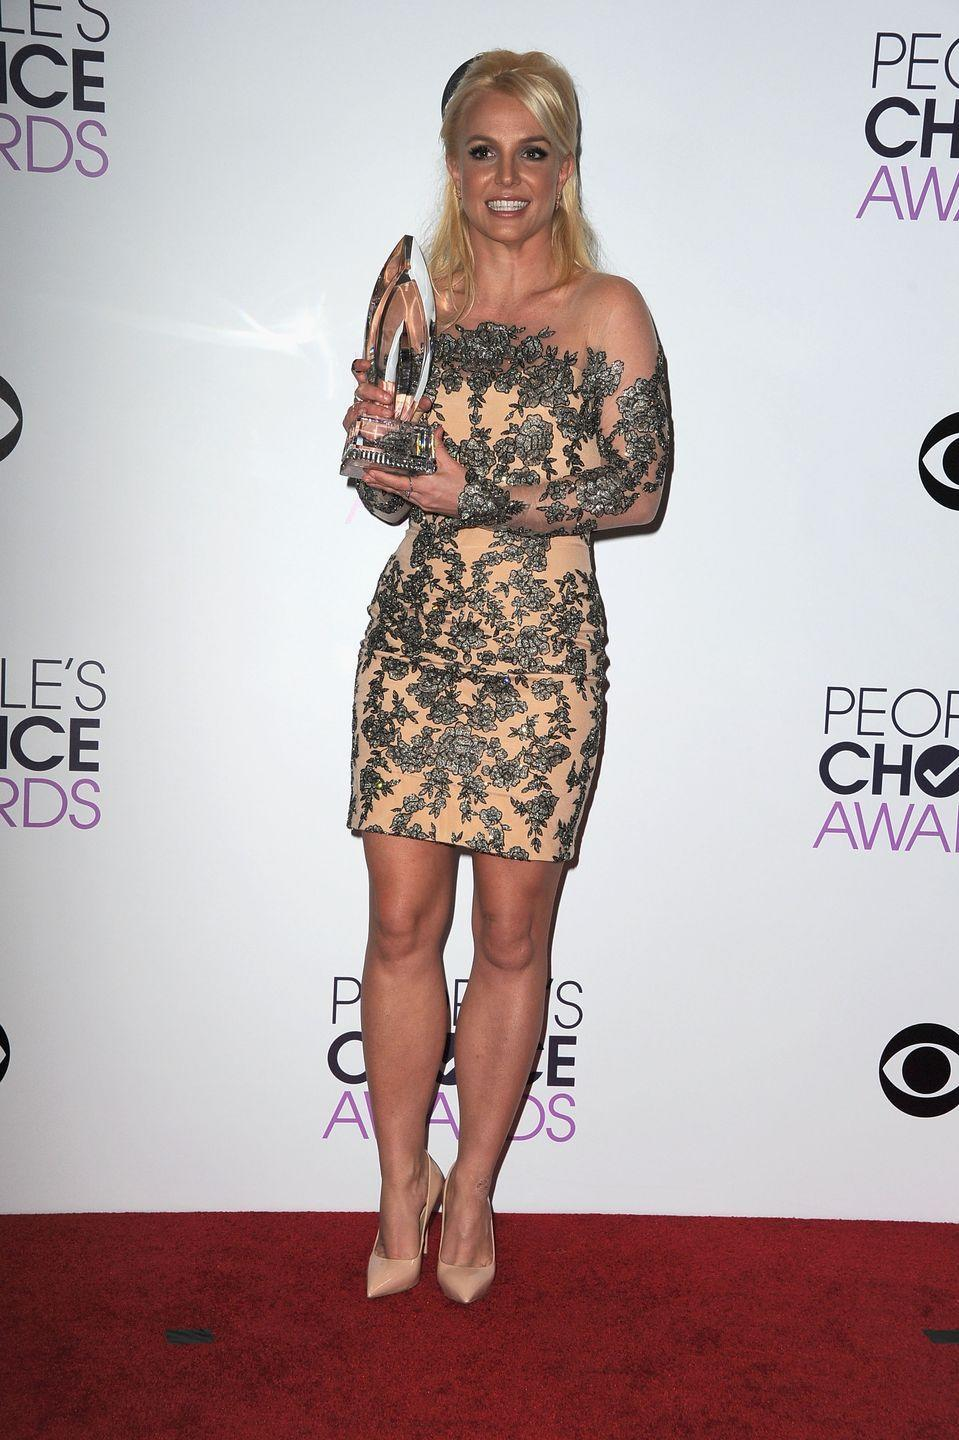 <p>The pop star poses with her People's Choice Award on the red carpet in an embellished mini with an illusion neckline. </p>